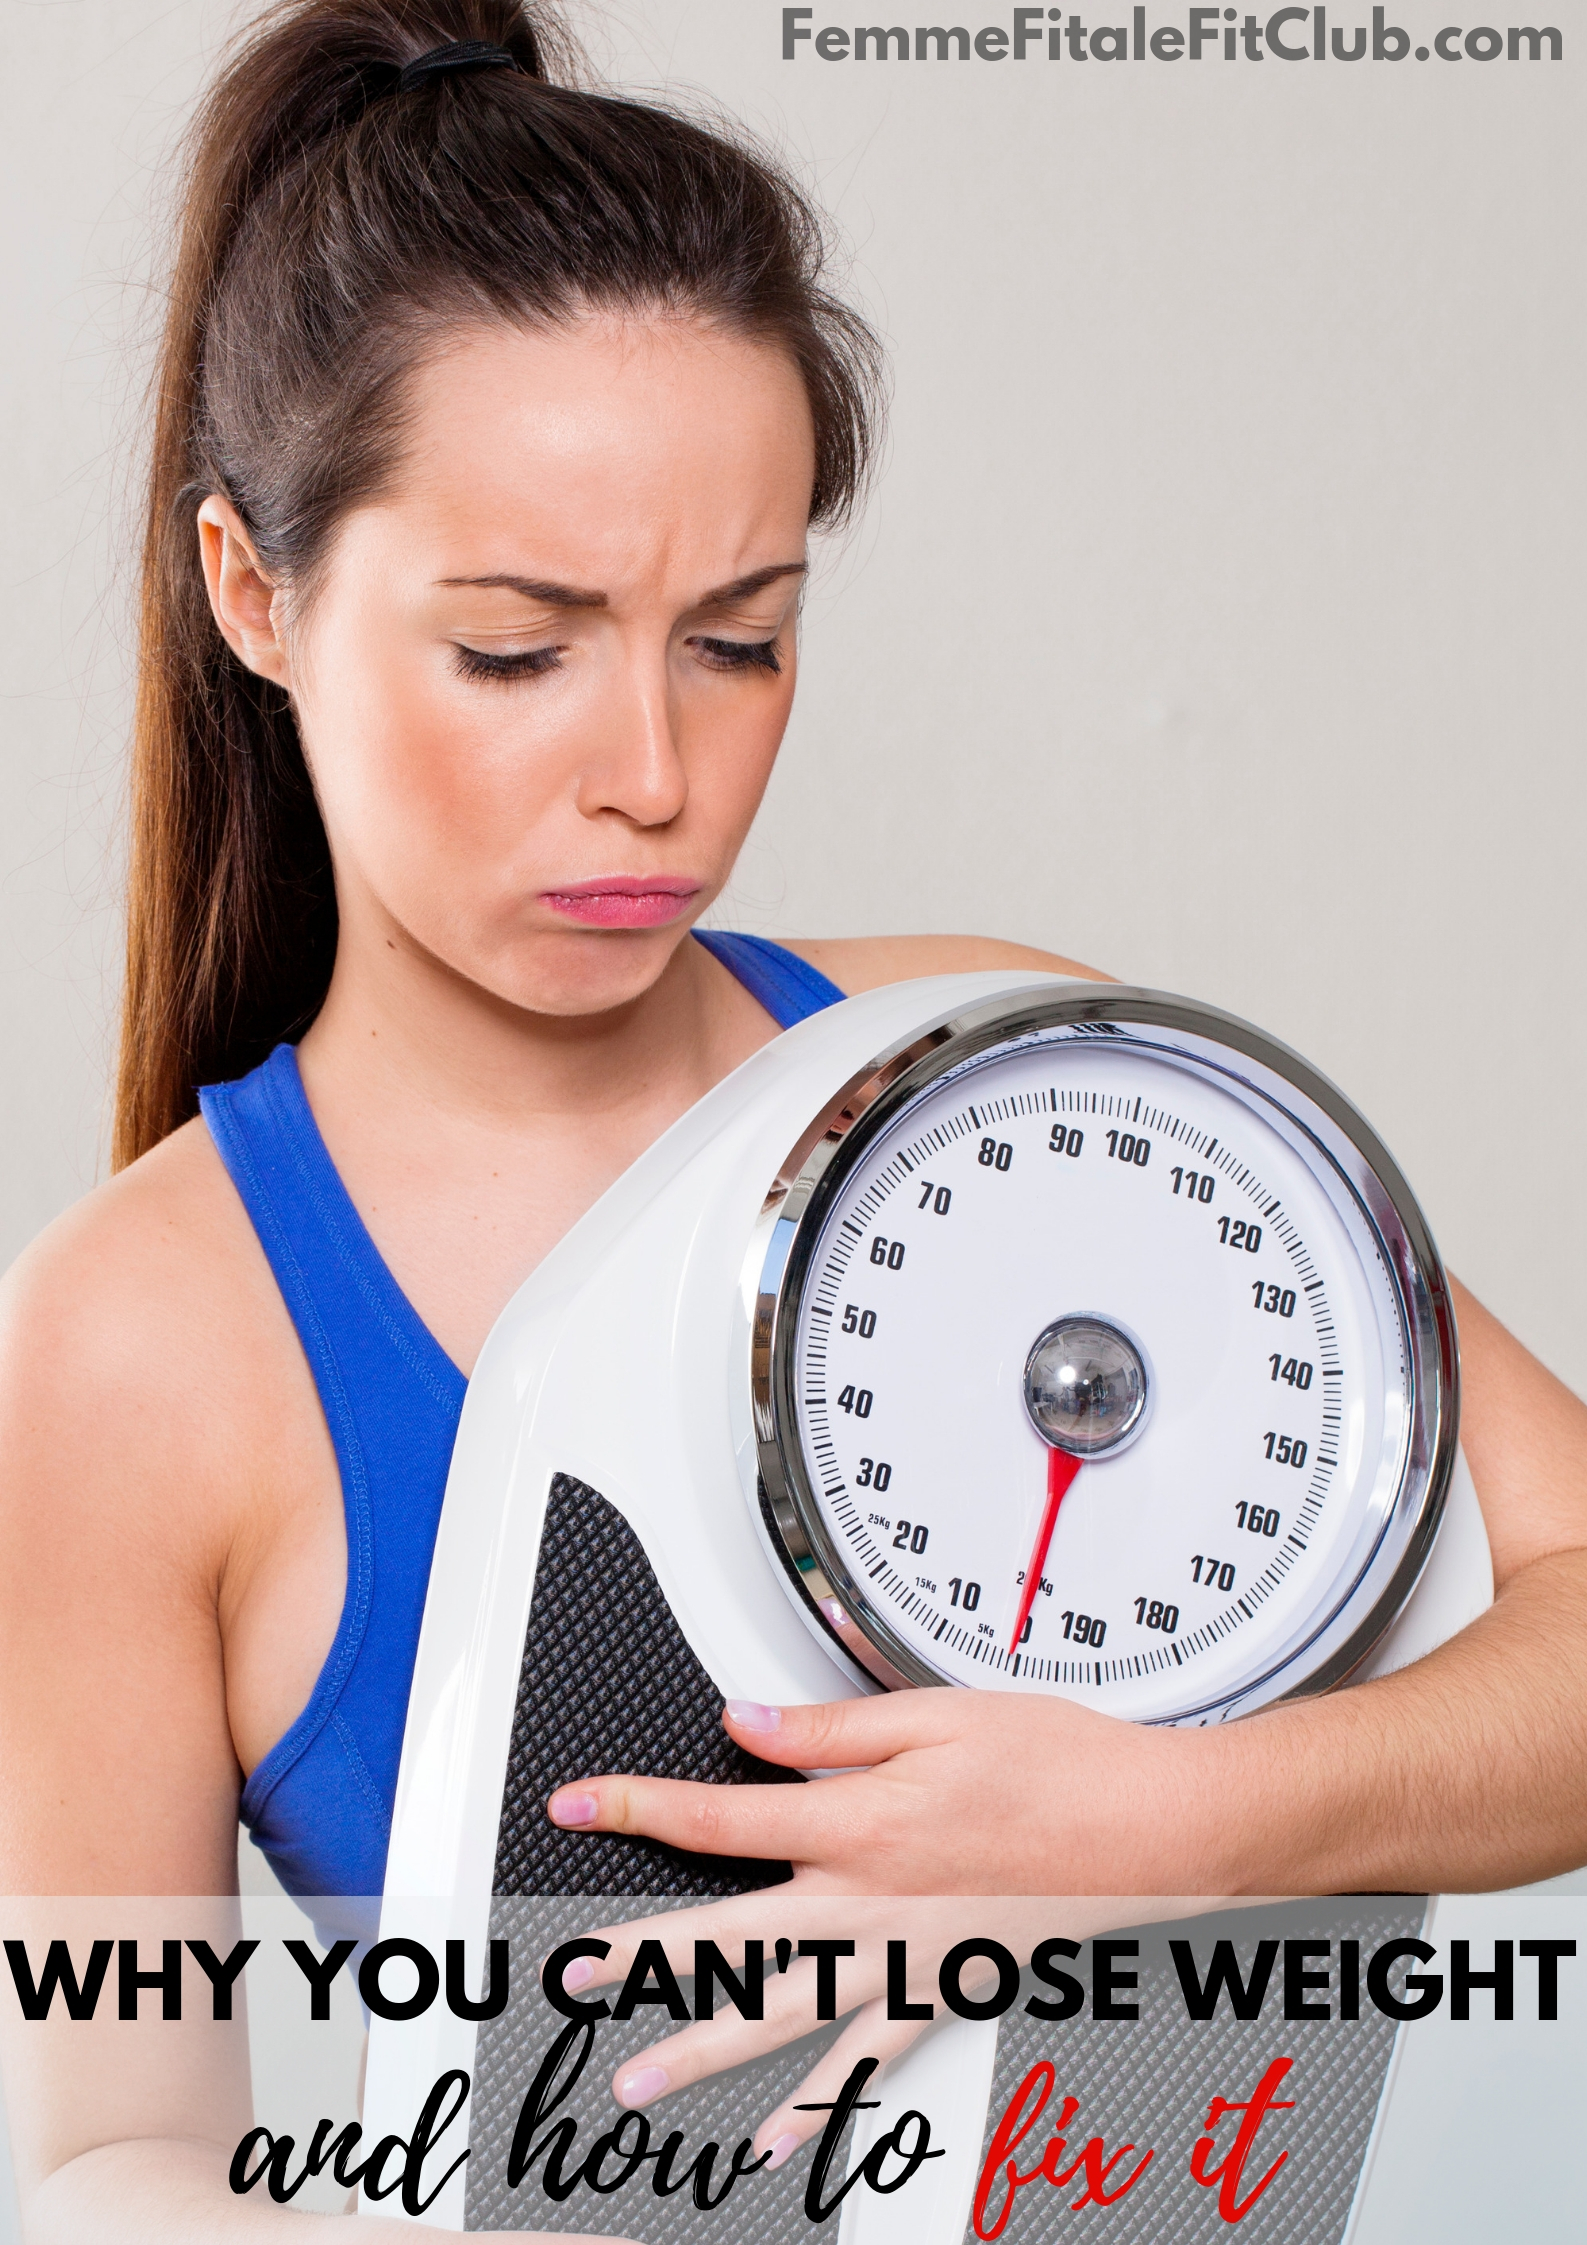 Why you can't lose weight and how to fix it #weightloss #womenshealth #womensweightloss #fatloss